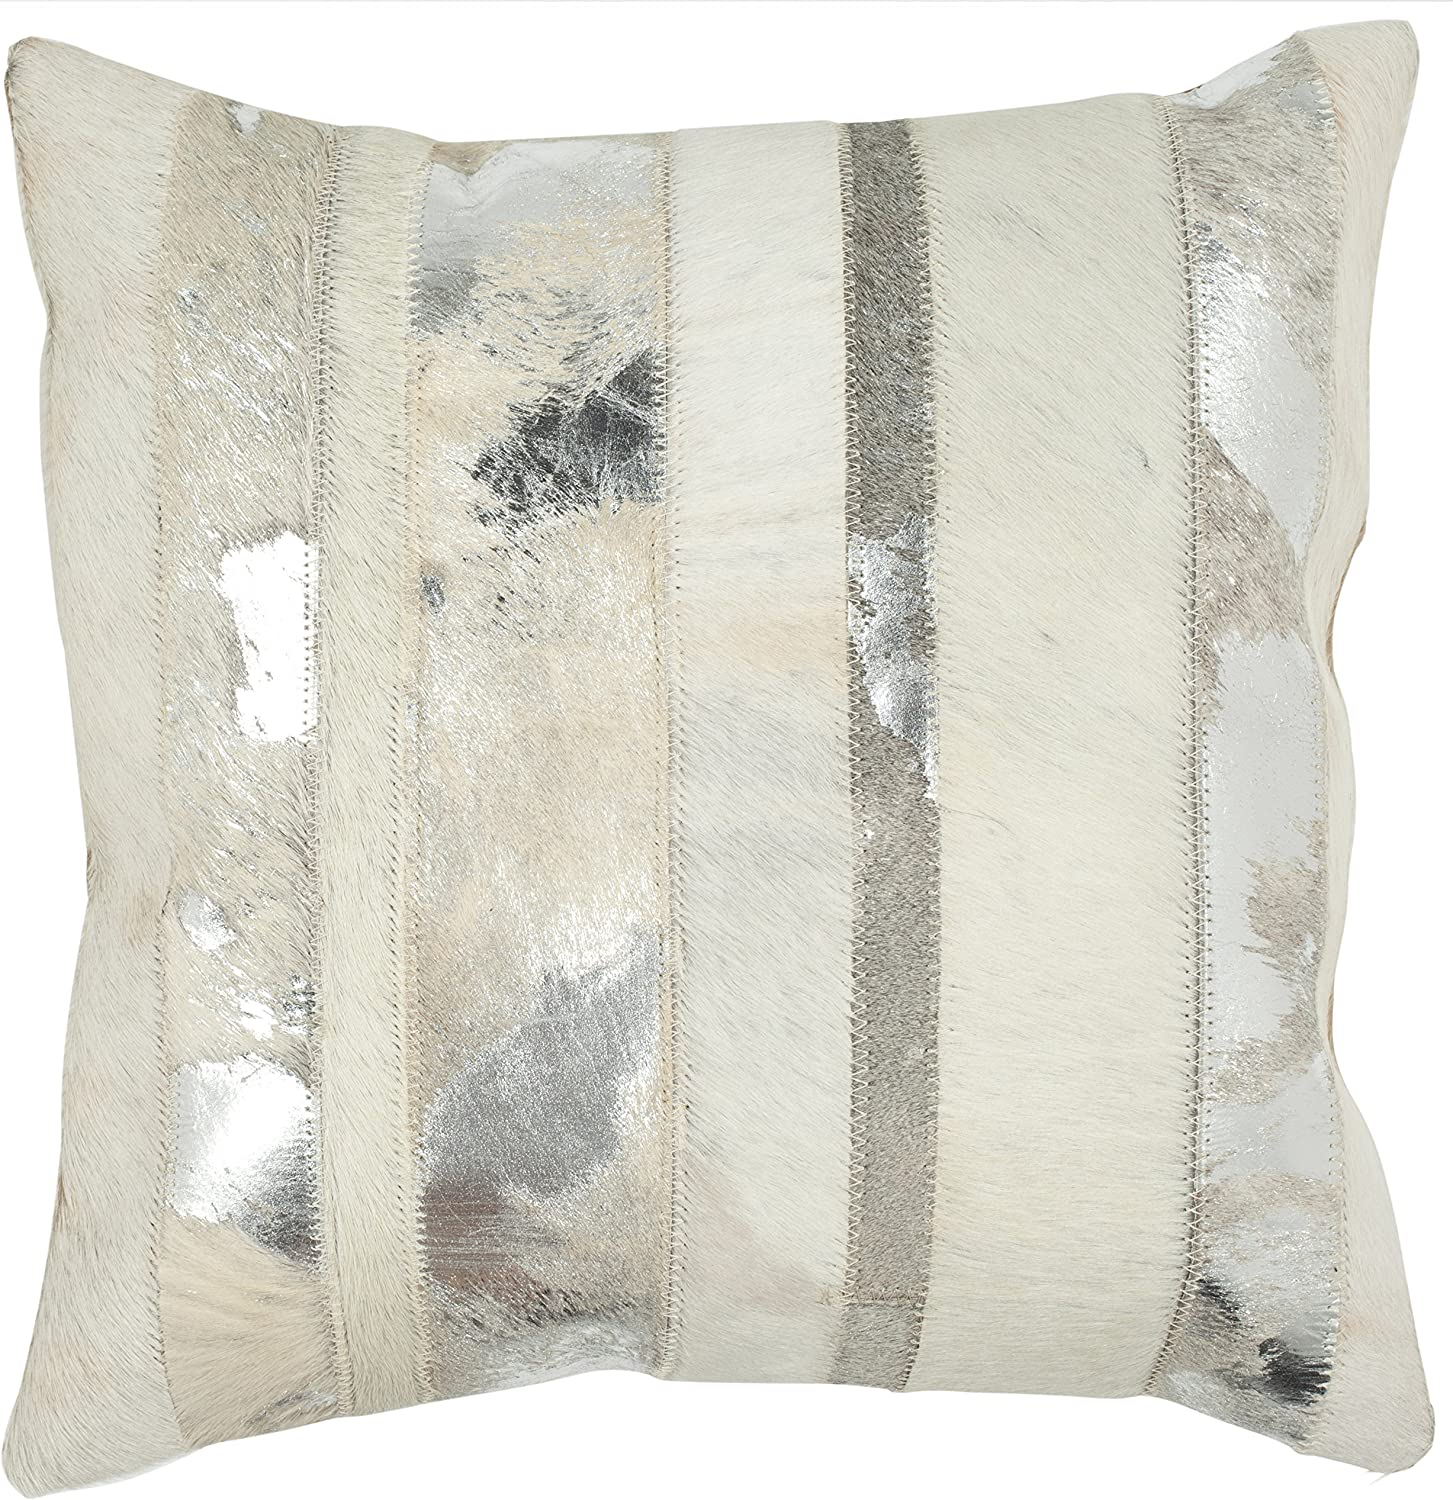 Amazon.com: Safavieh almohada Collection Cowhide 14 por 20 ...